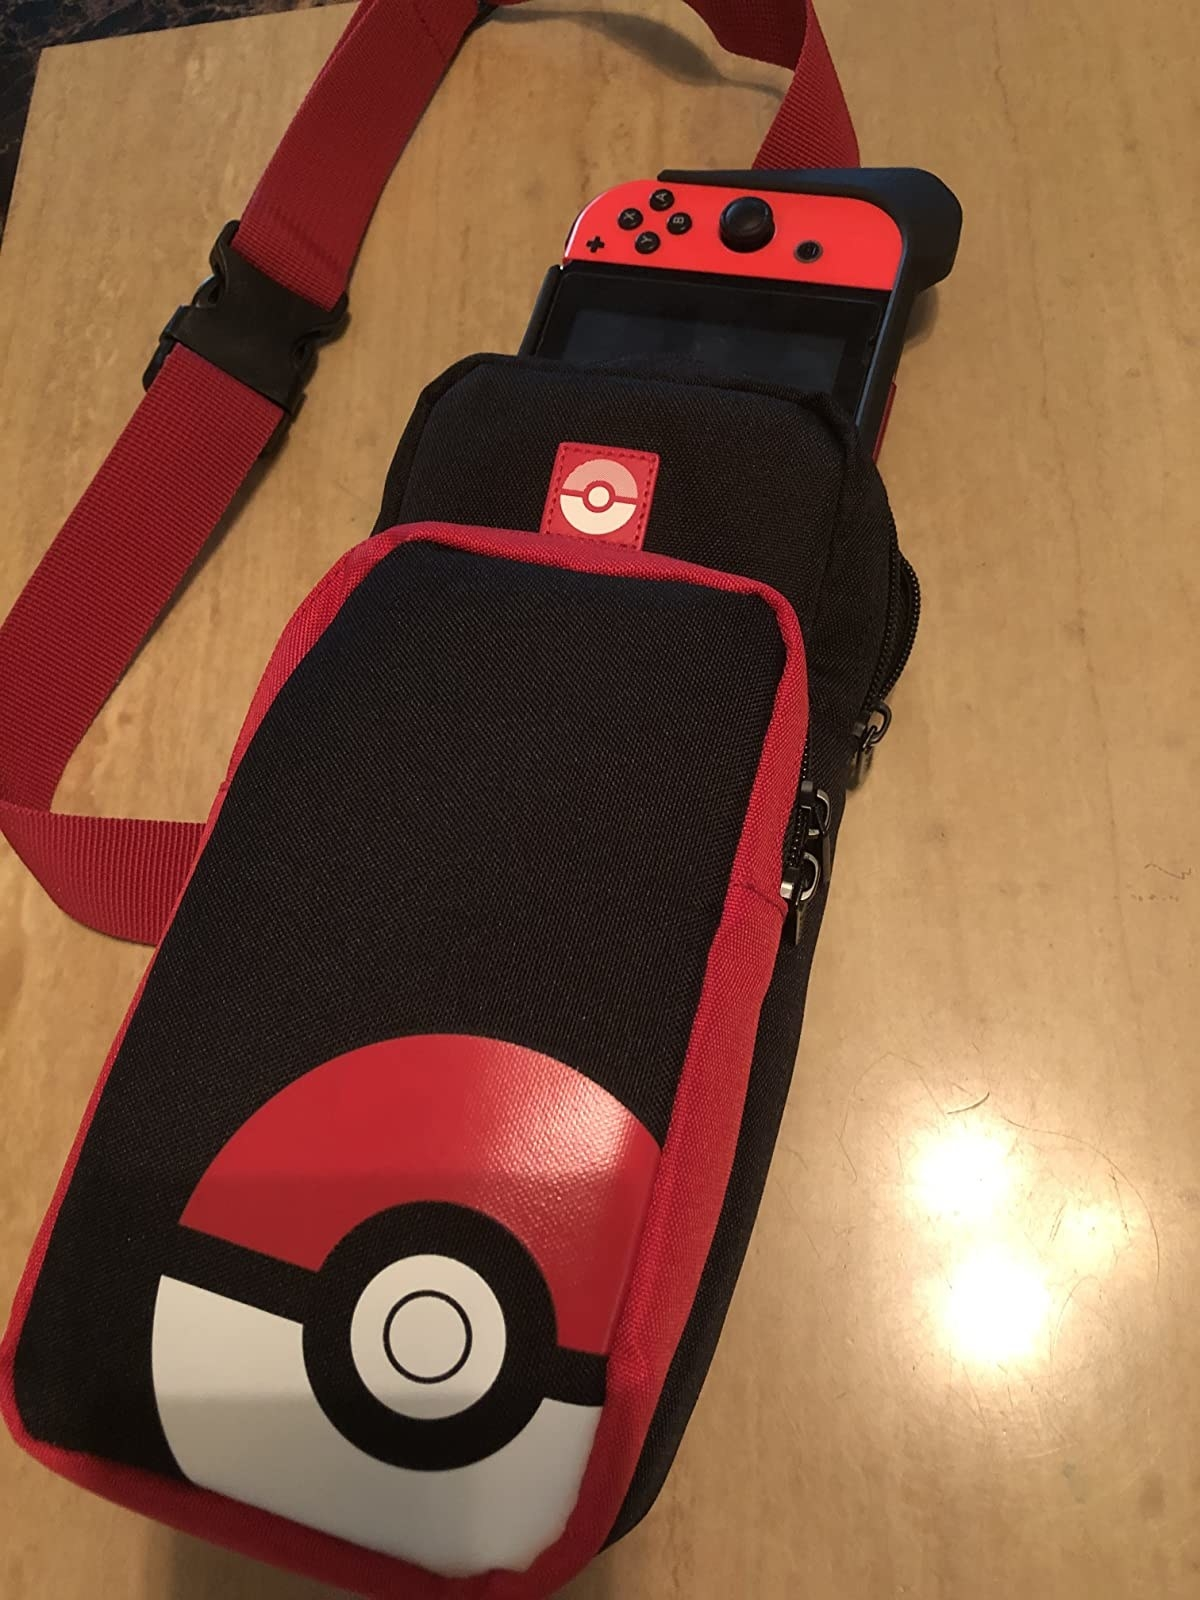 Reviewer photo showing Nintendo Switch inside of Pokémon-themed bag